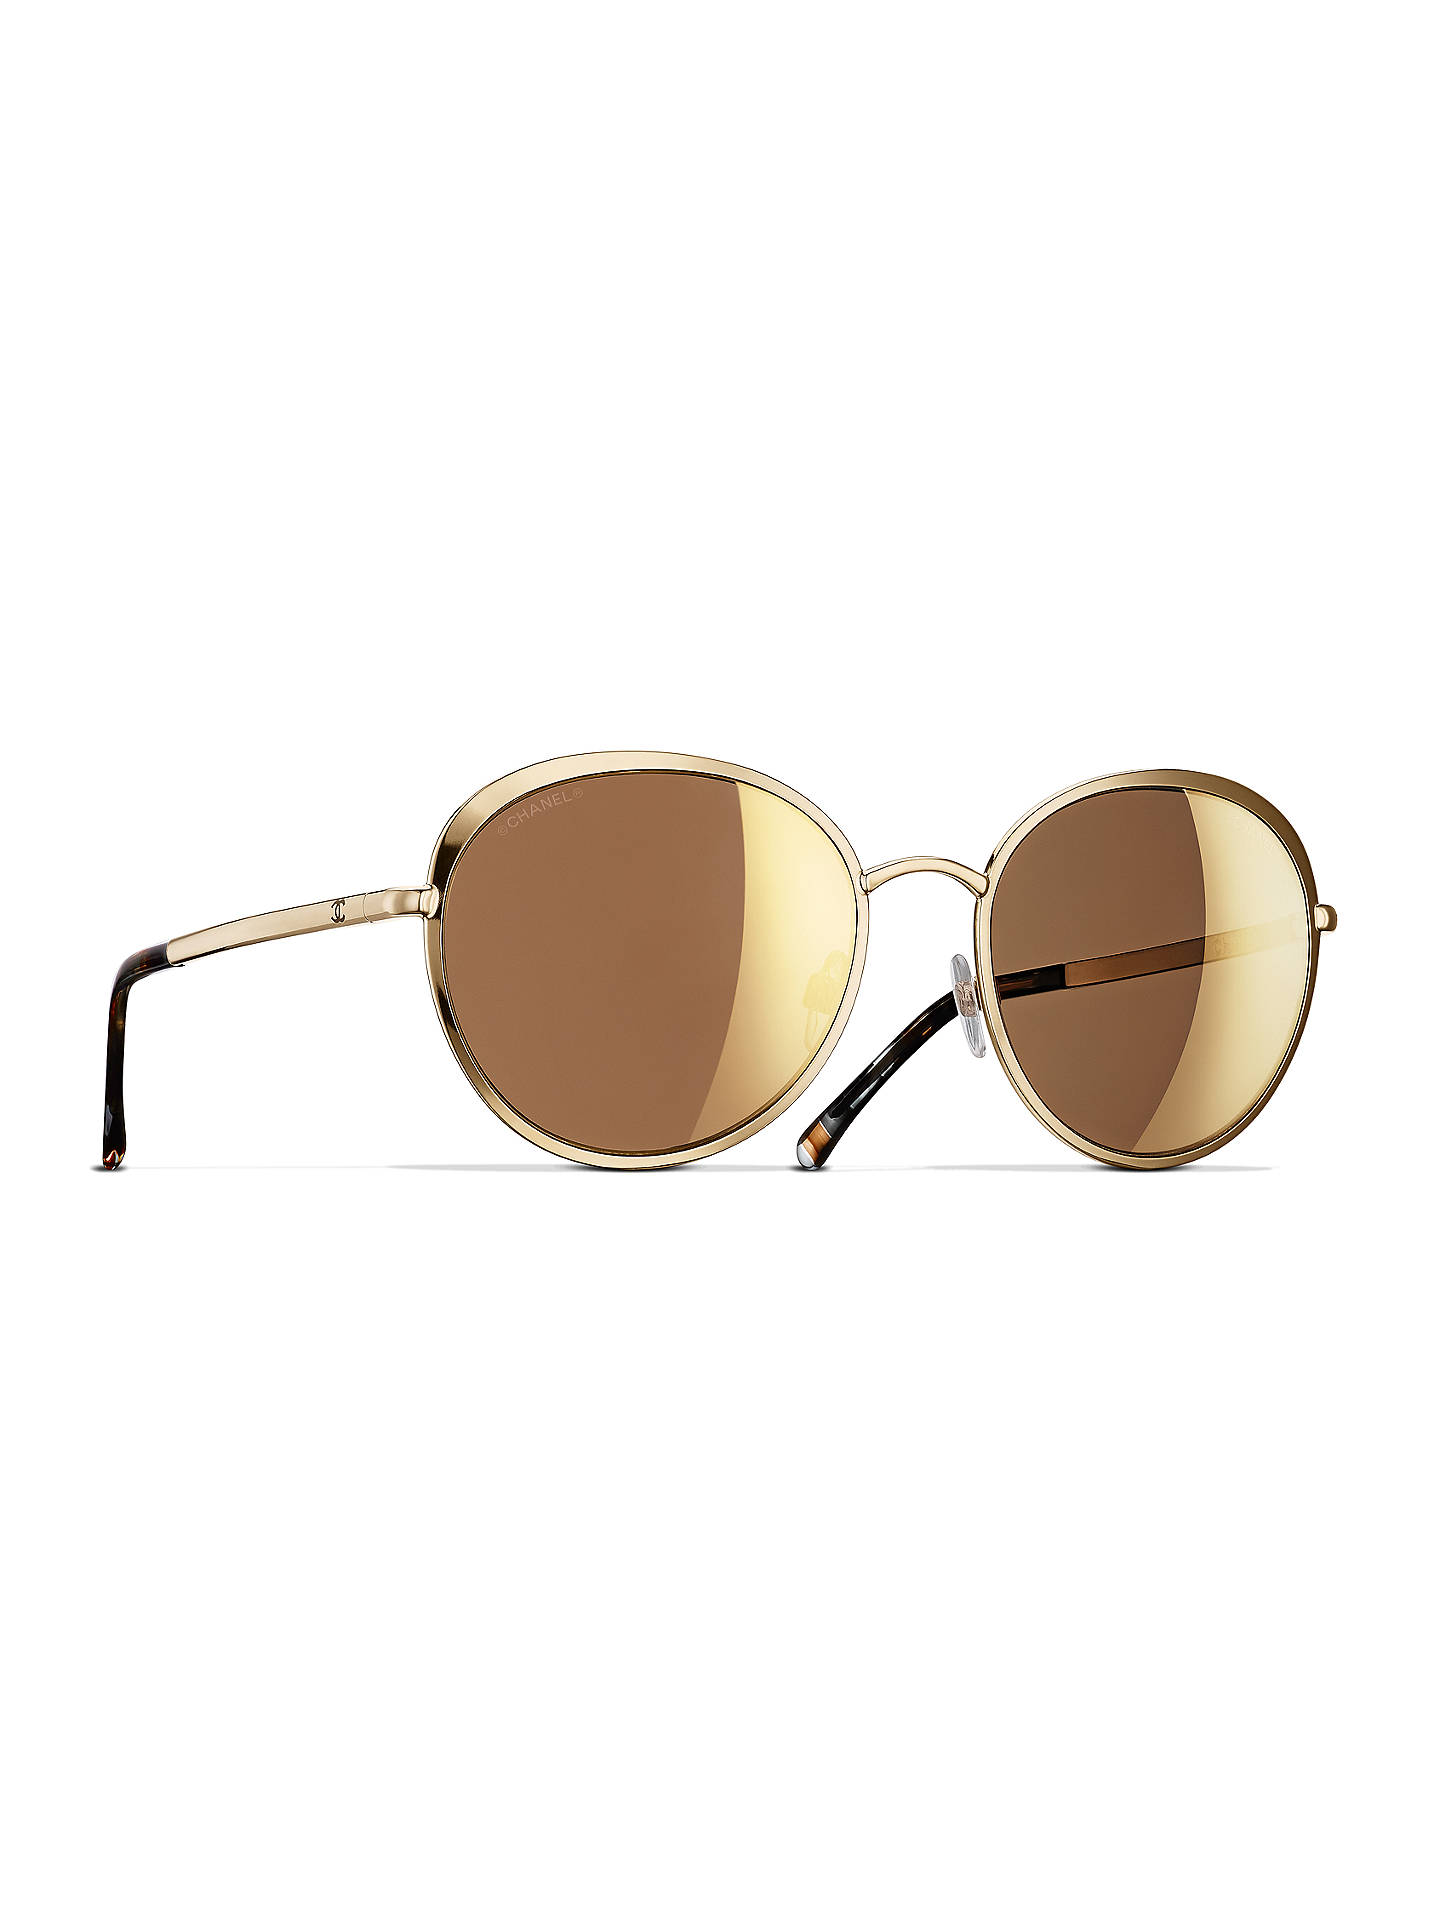 95d8616844cb Buy CHANEL Round Sunglasses CH4206 Gold Online at johnlewis.com ...